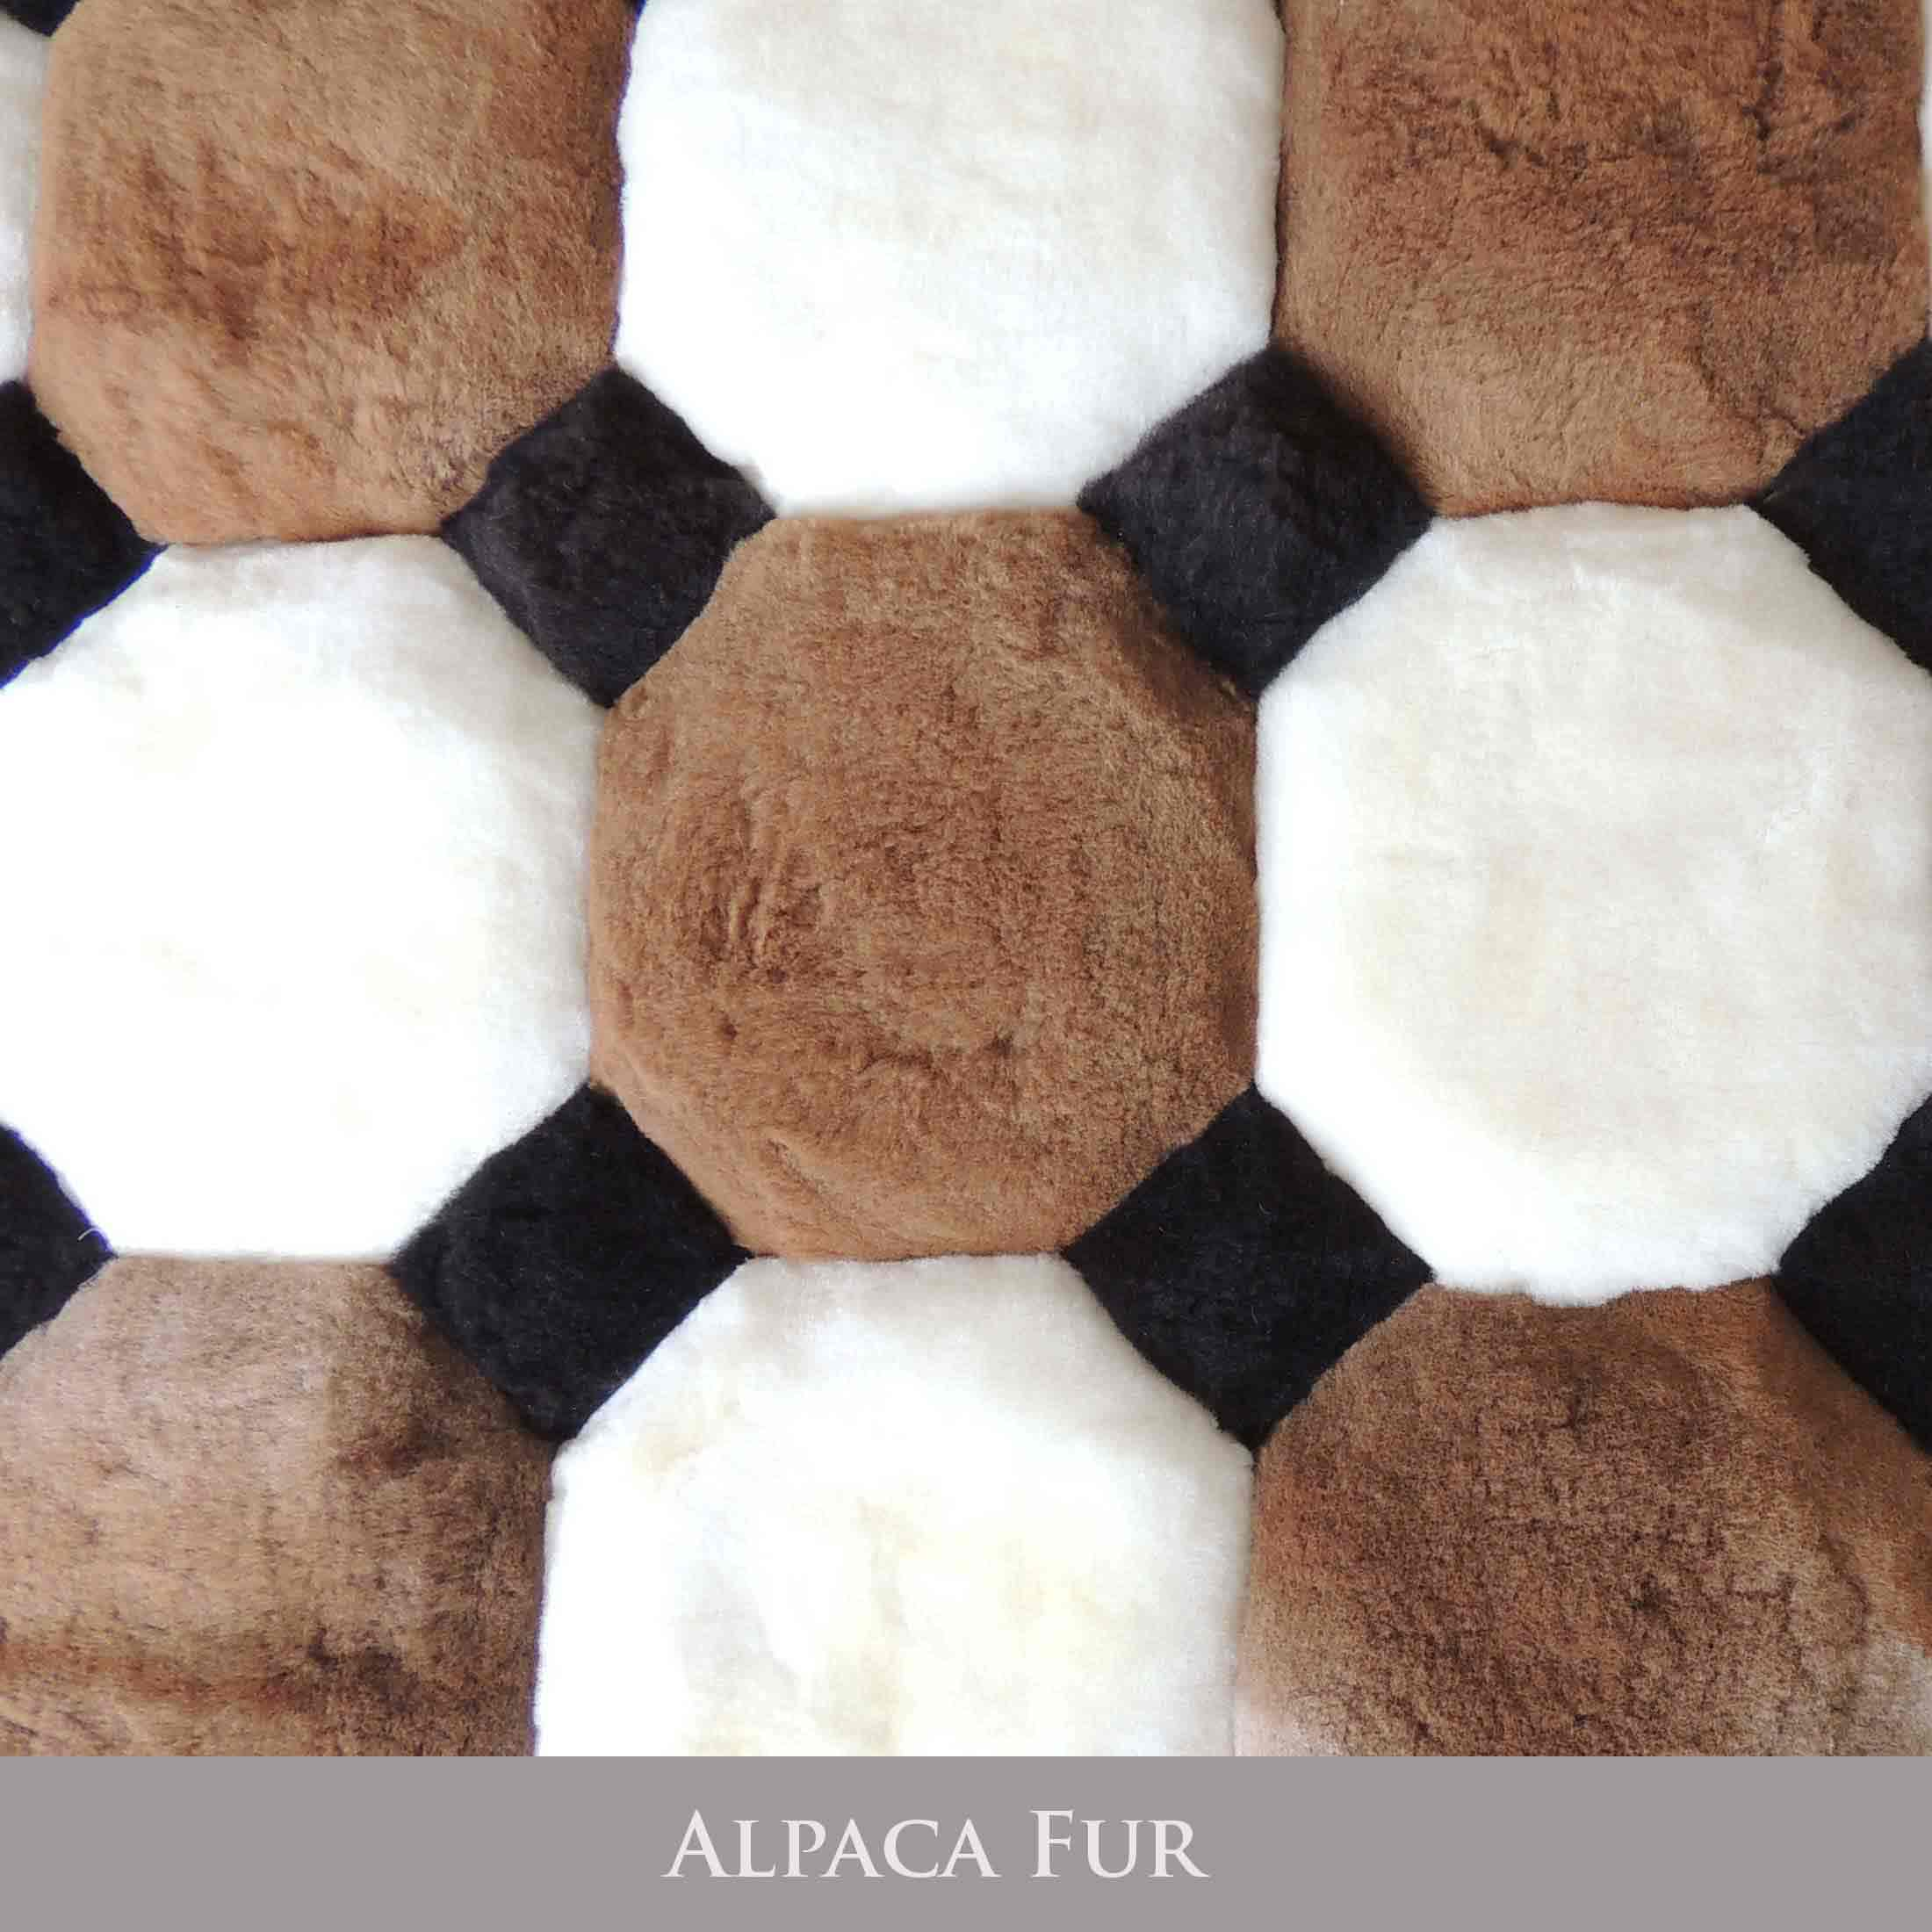 PopsPlaza home collection Peruvian alpaca fur